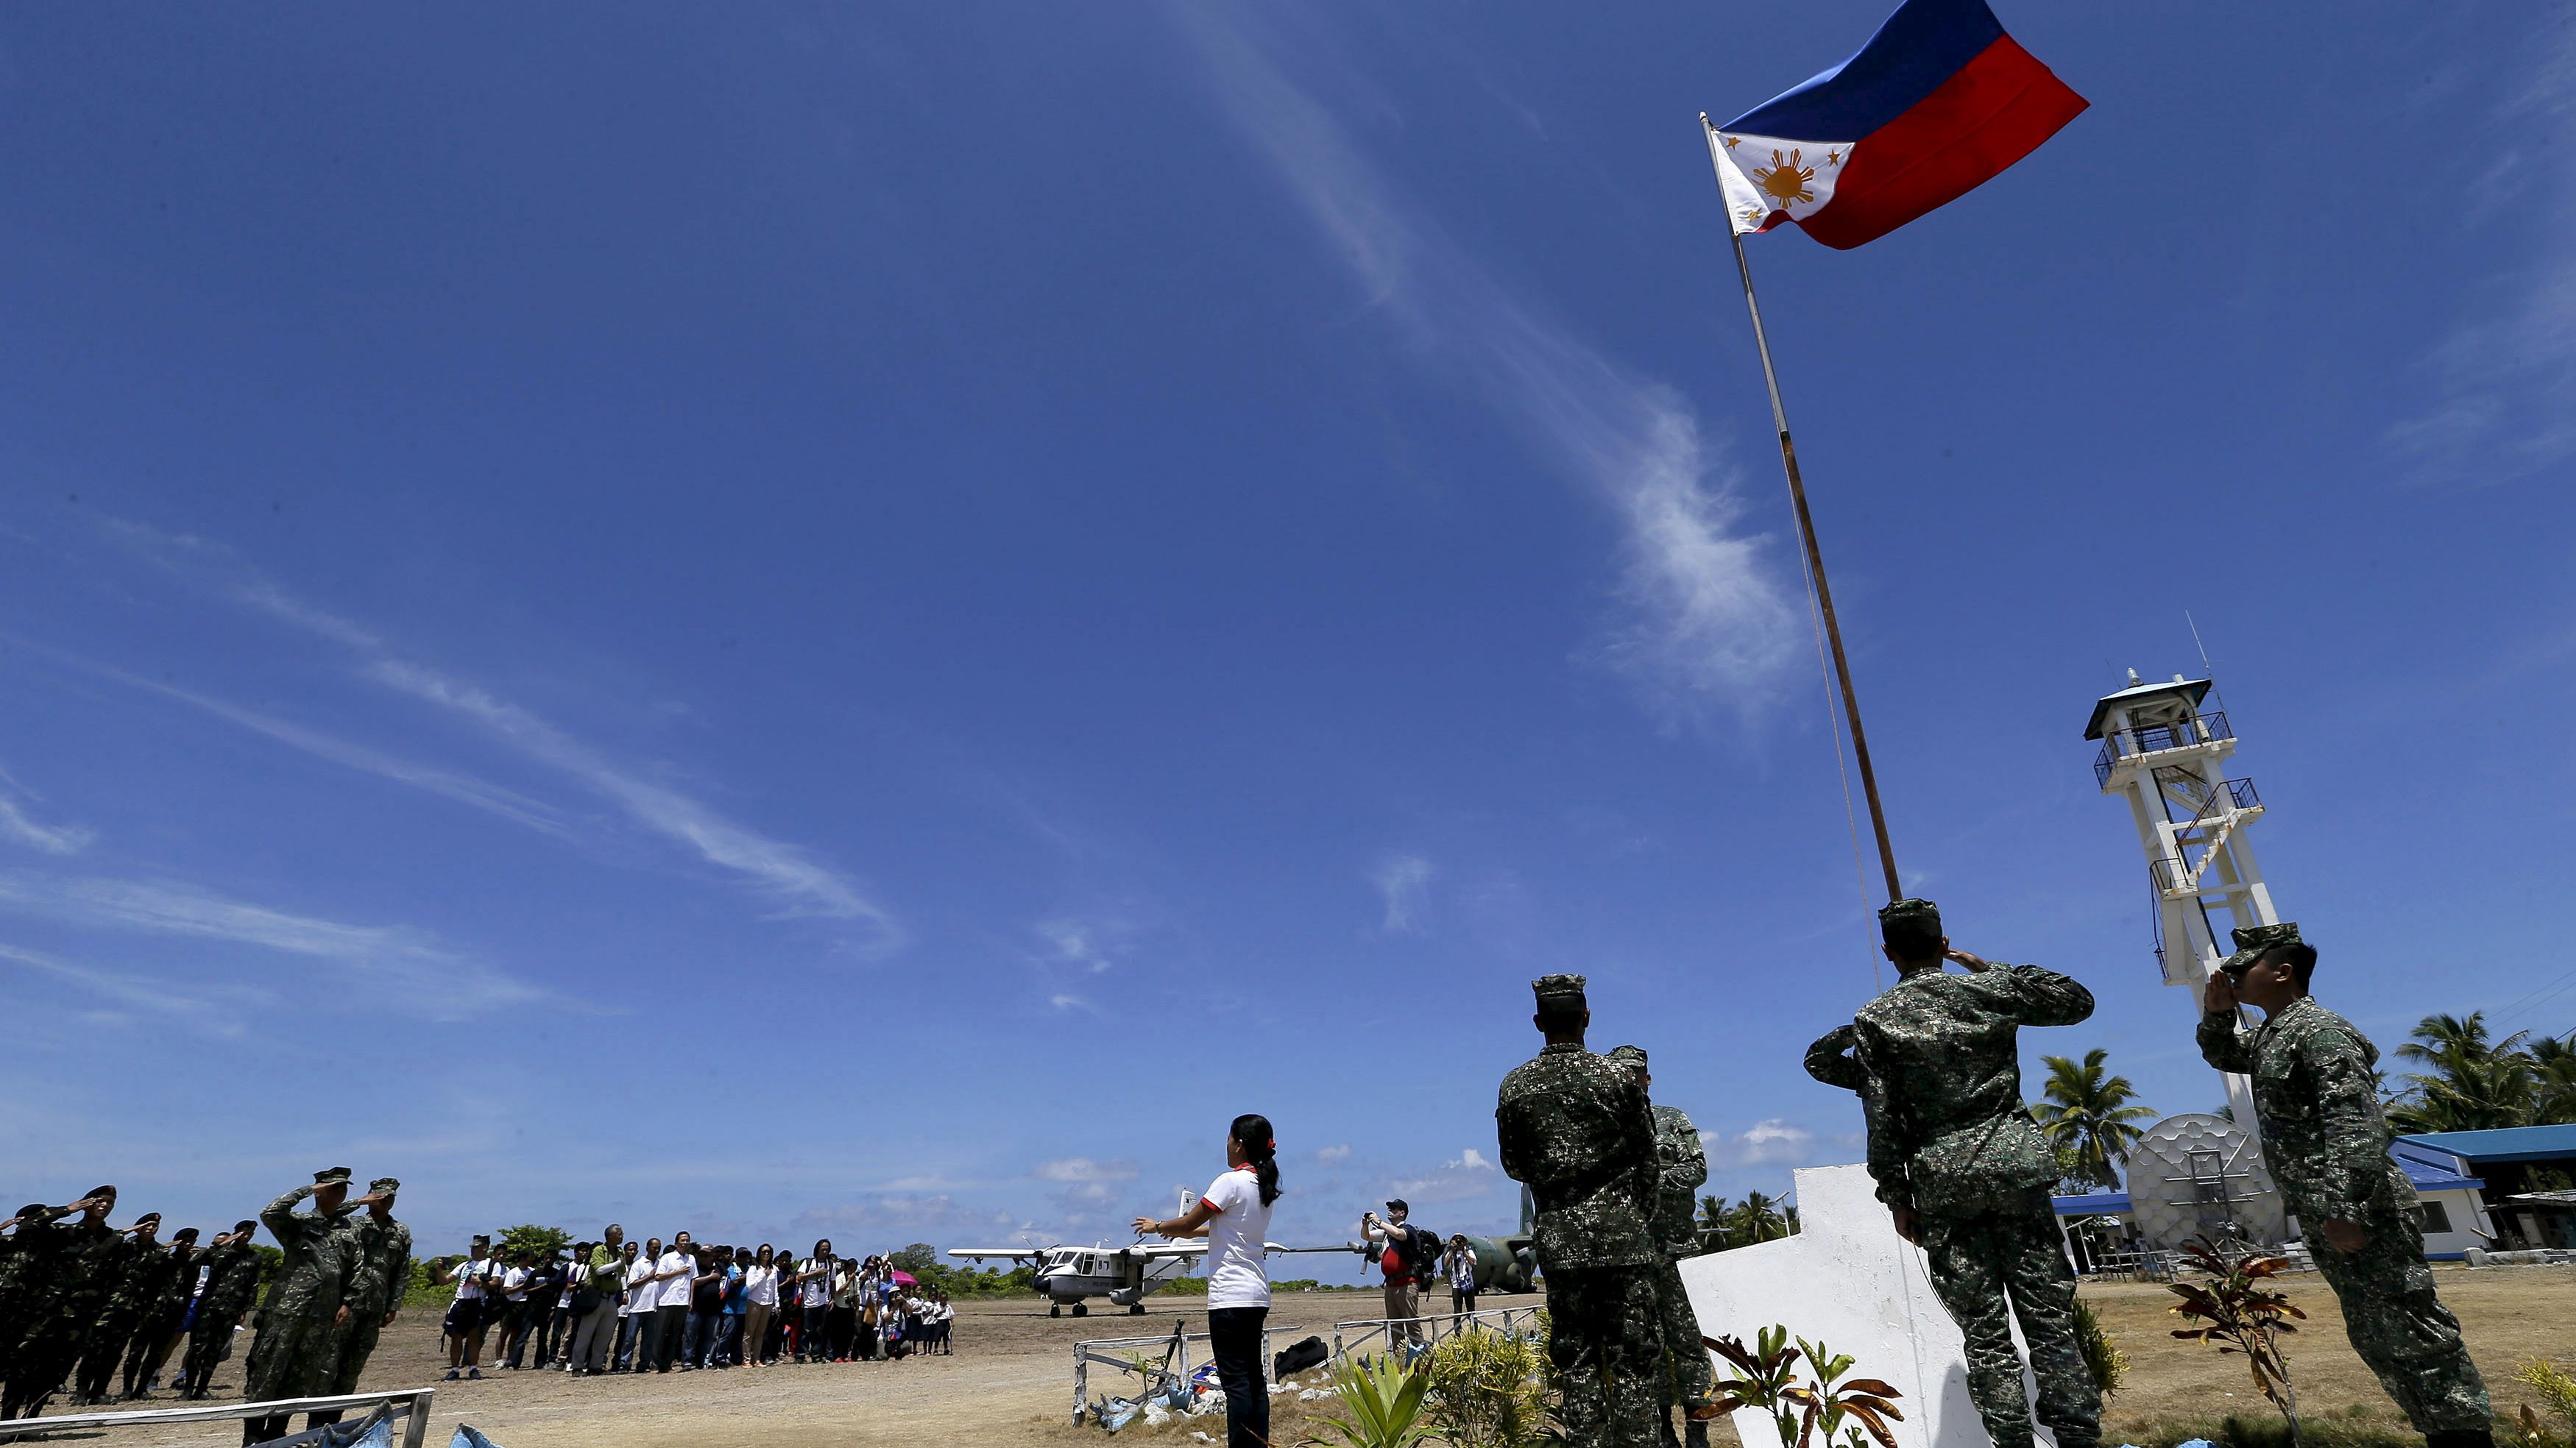 Filipino residents and soldiers conduct a flag raising ceremony during the visit of Armed Forces of the Philippines military chief General Gregorio Catapang in Thitu Island at the Spratly group of islands in the South China Sea, May 11, 2015.